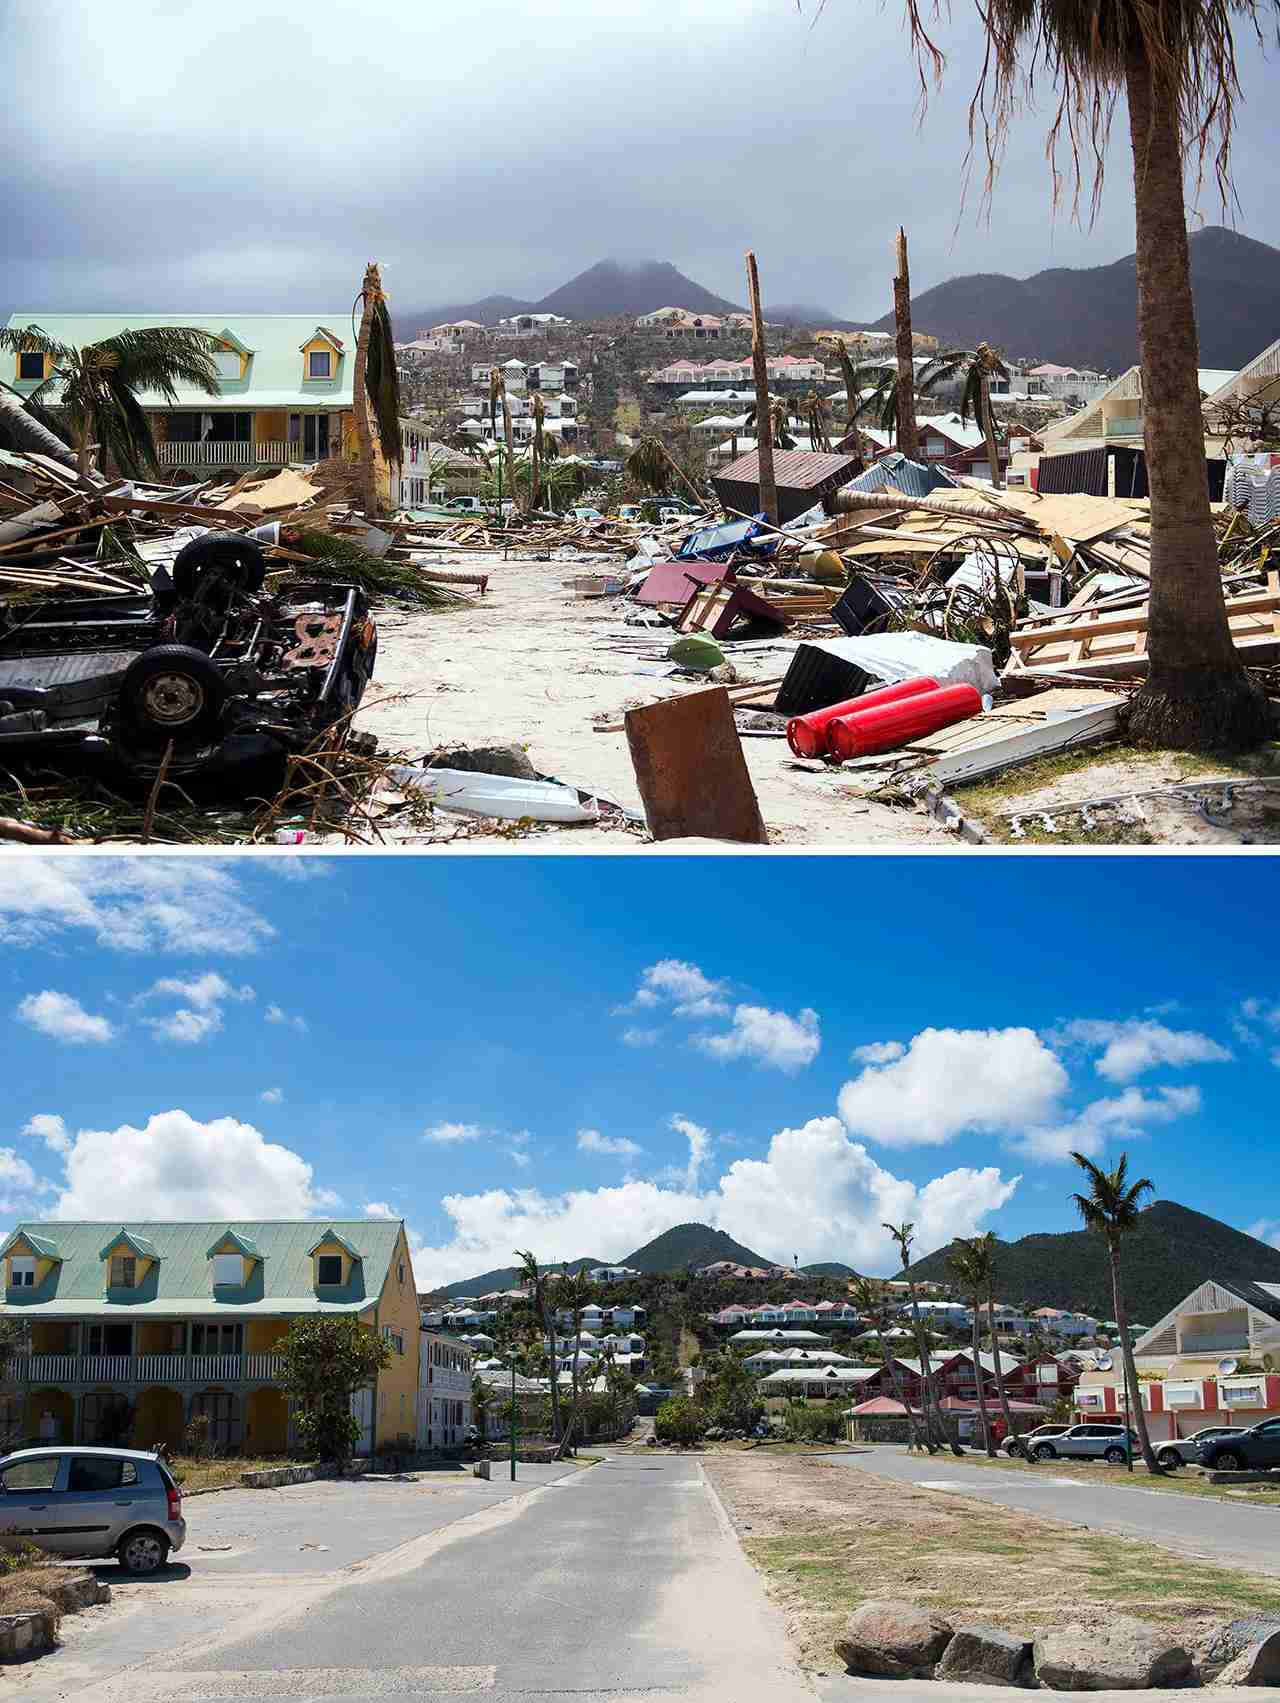 A street full of debris in Orient Bay on the French Carribean island of Saint-Martin on September 7, 2017 and the same street cleared of debris on February 27, 2018. (Photo by LIONEL CHAMOISEAU/AFP/Getty Images)